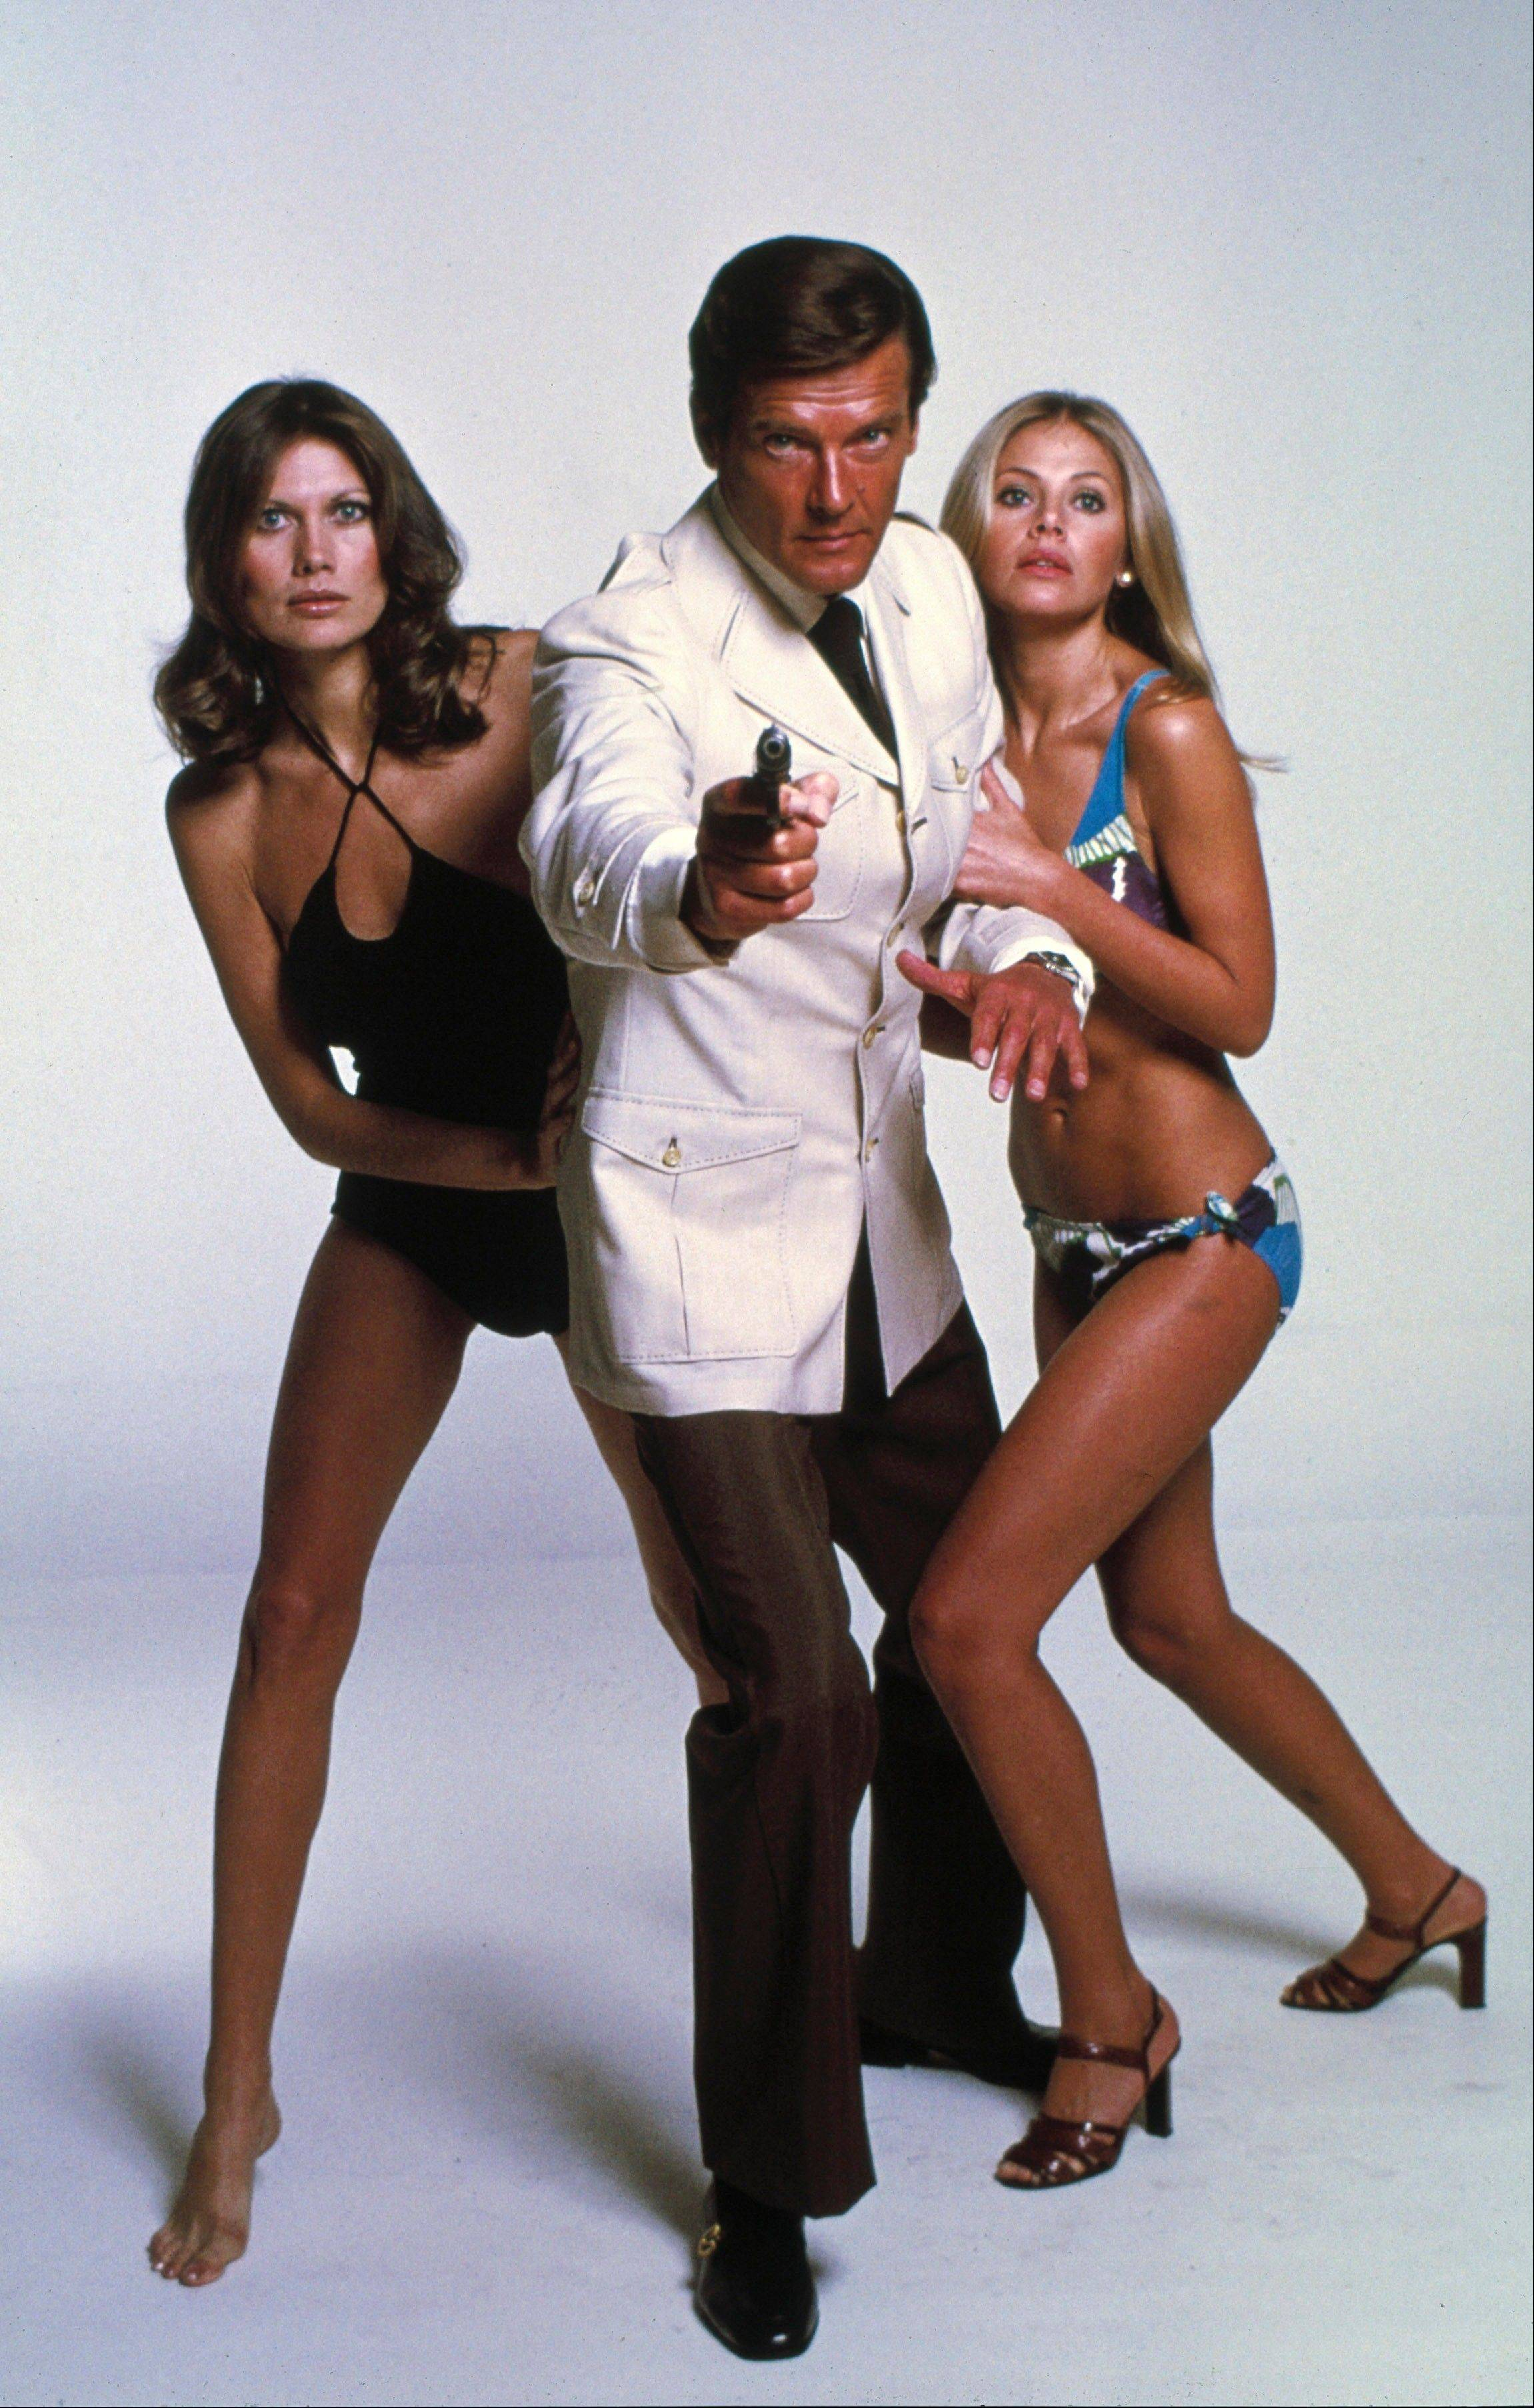 "Roger Moore, center, with Maud Adams, left, and Britt Ekland, from the James Bond 1974 film, ""The Man with the Golden Gun."" Whatever their role, Bond girls still must be inarguably beautiful. The film is included in the MGM and 20th Century Fox Home Entertainment Blu-Ray ""Bond 50"" anniversary set."